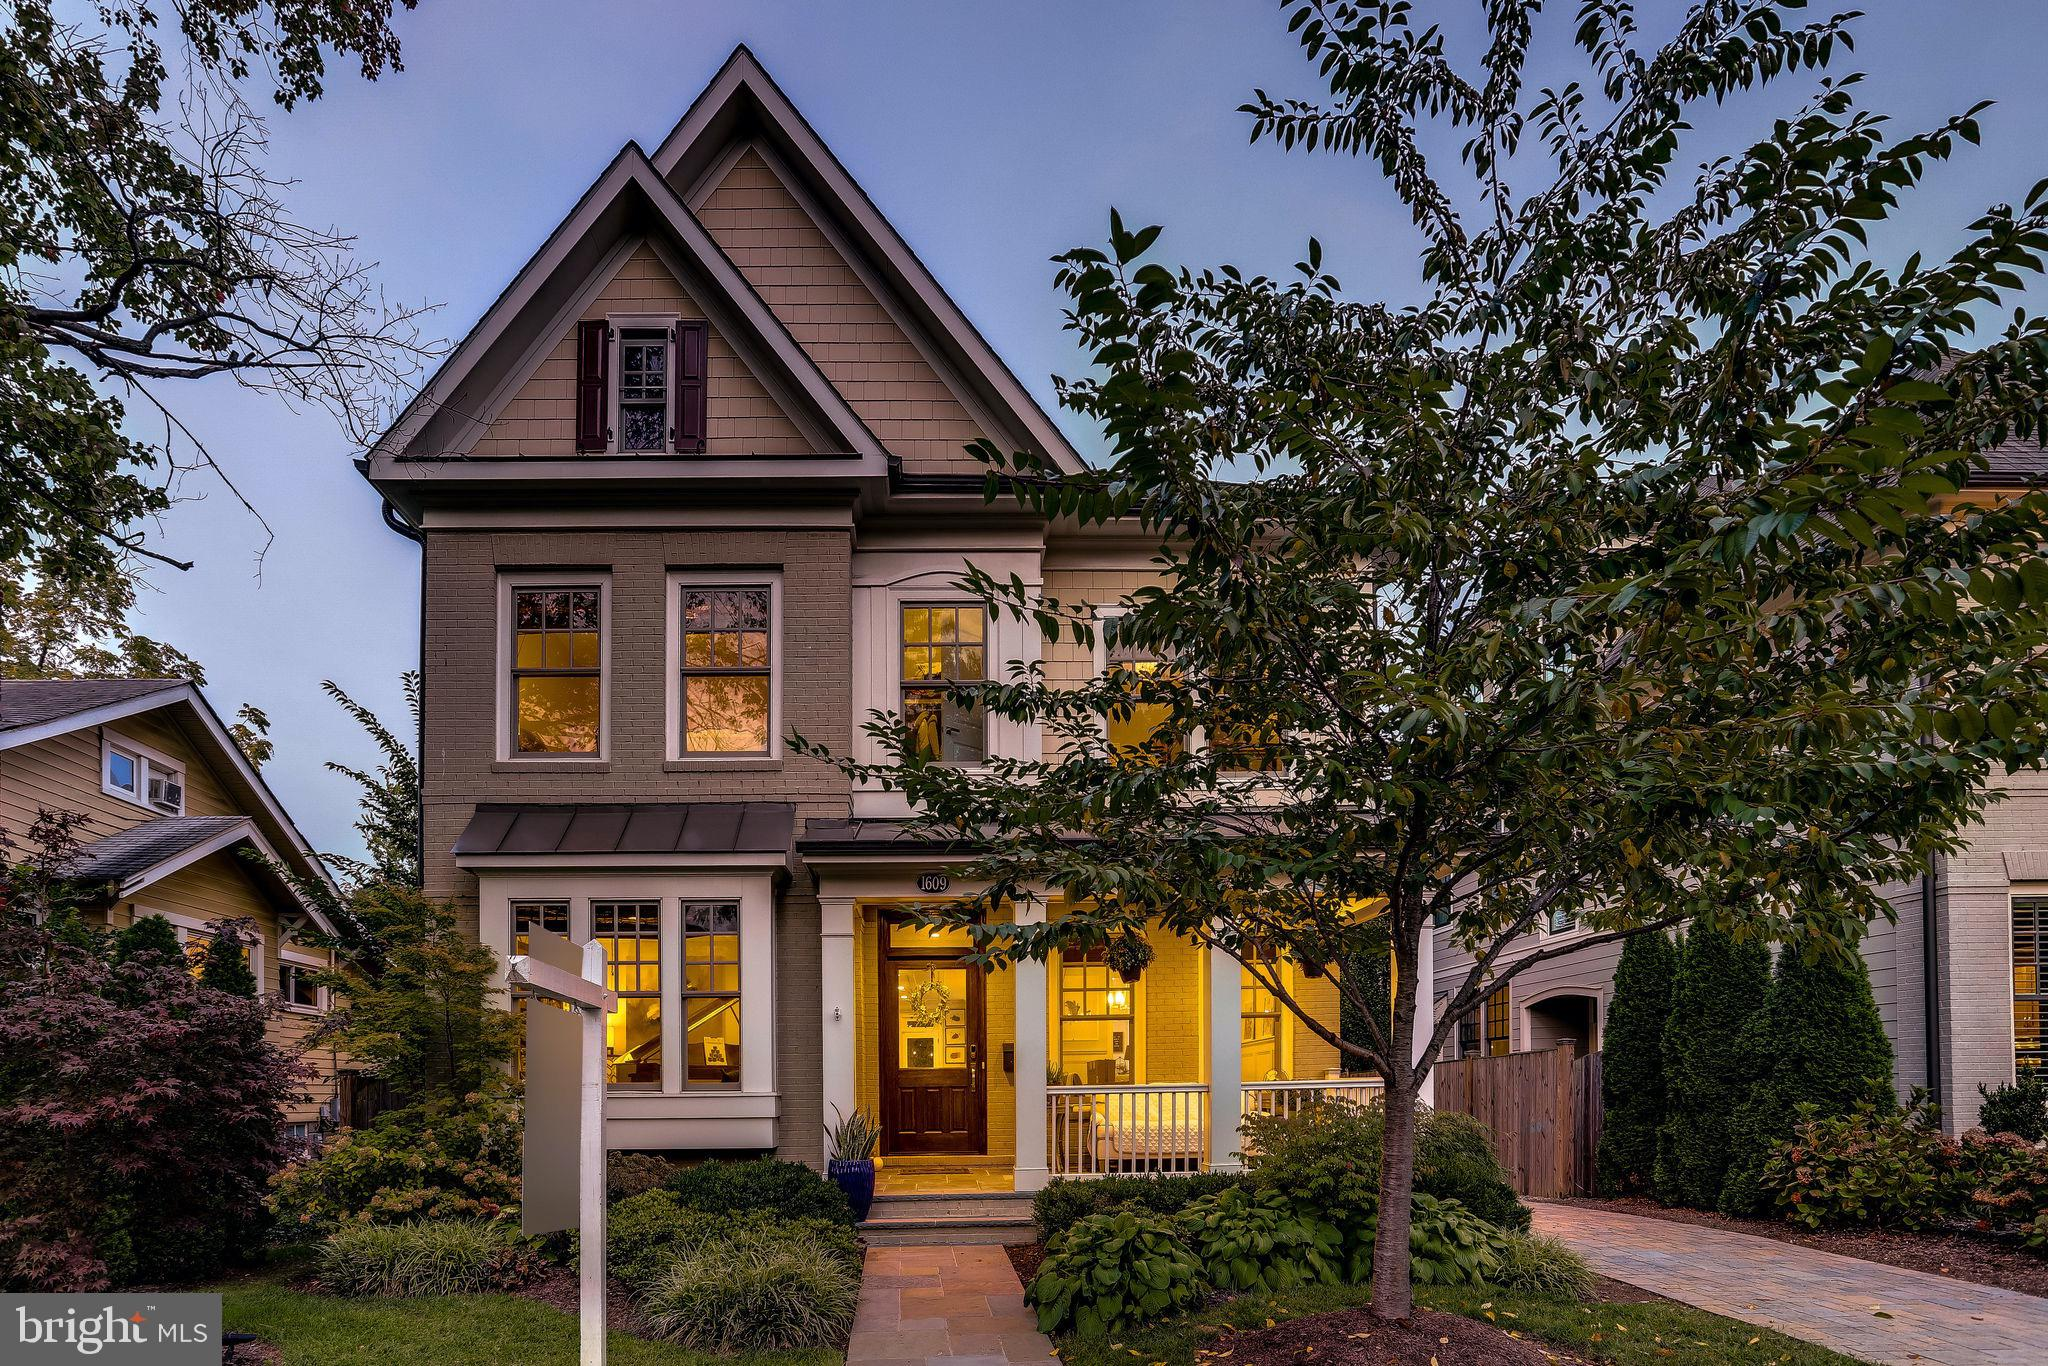 This luxurious Craftsman home, built in 2014, offers over 5,200 sq ft of space with Five bedrooms an